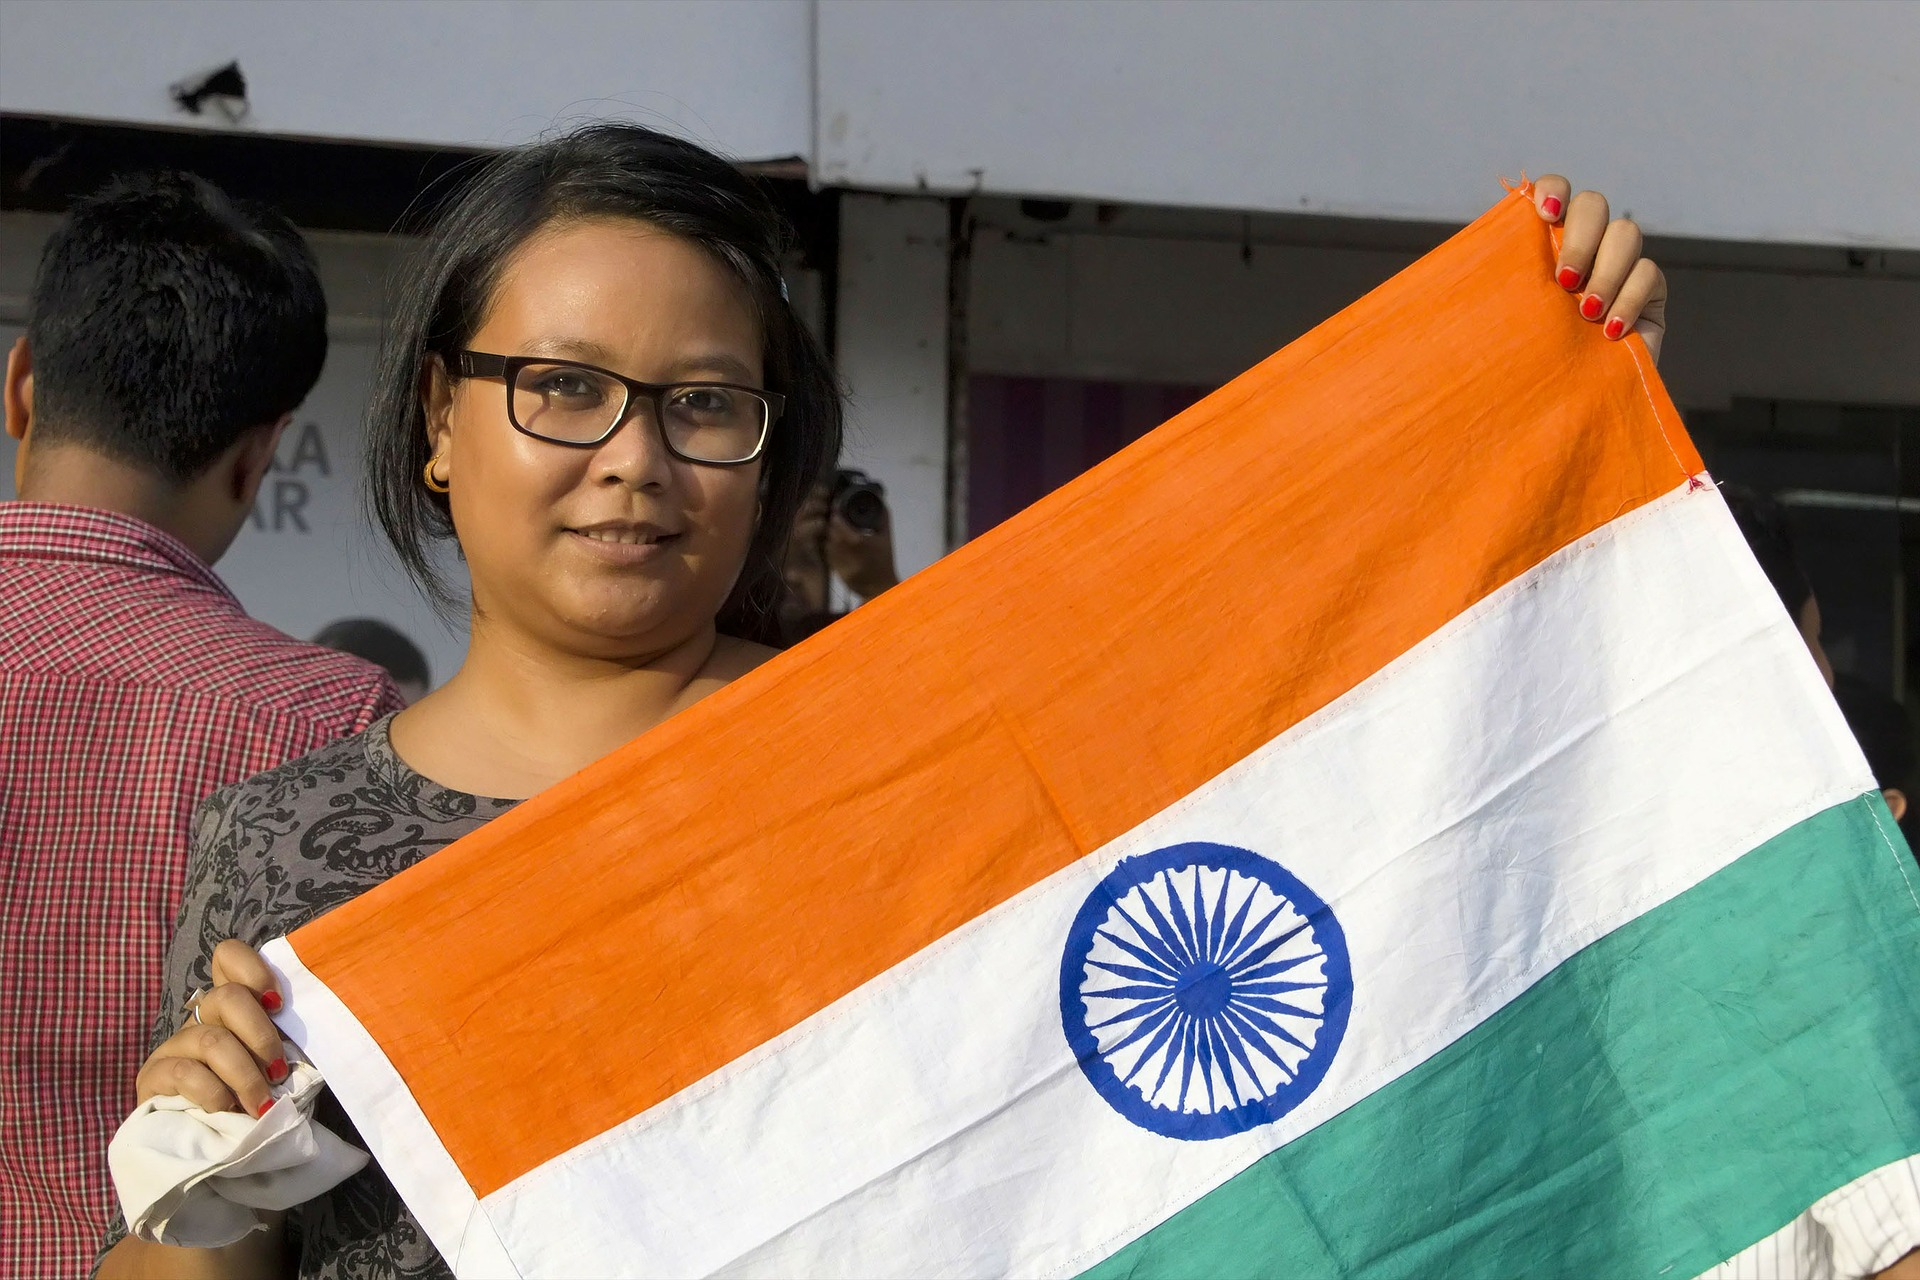 India Lady with flag